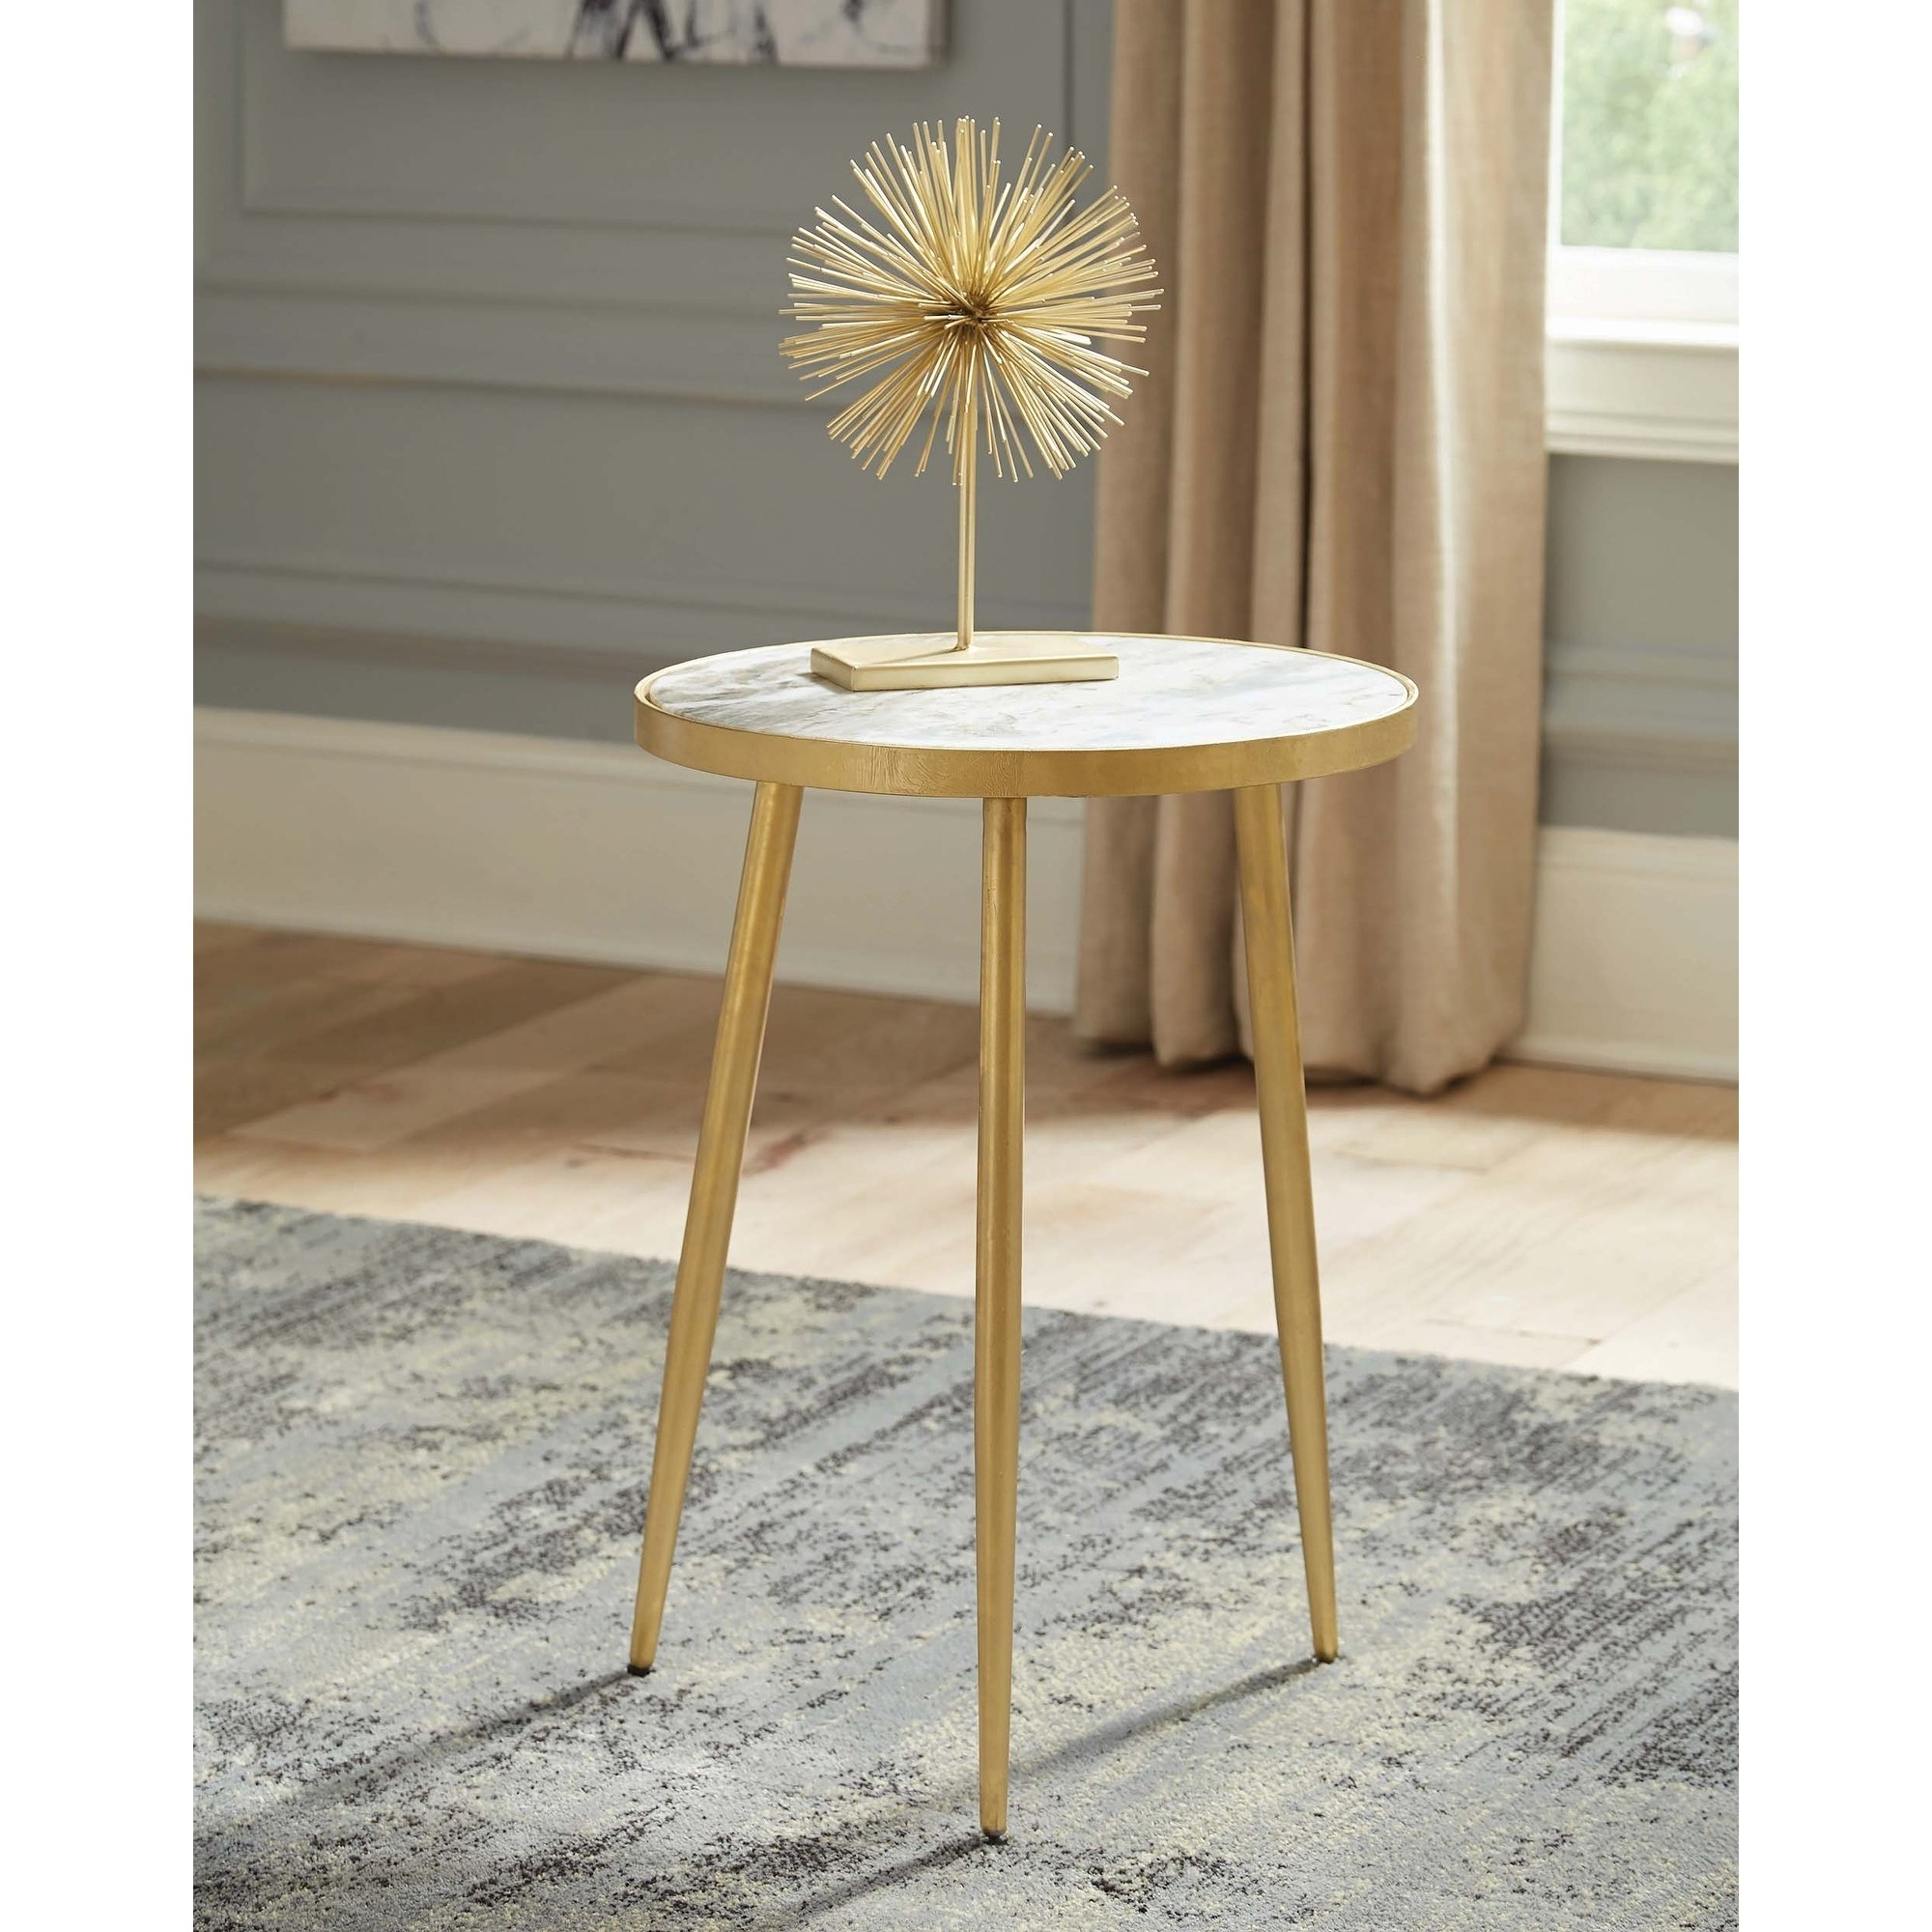 white and gold round accent table free shipping today long console behind couch rustic chairside homesense tables wine storage cabinets tree lamp corner furniture magnussen